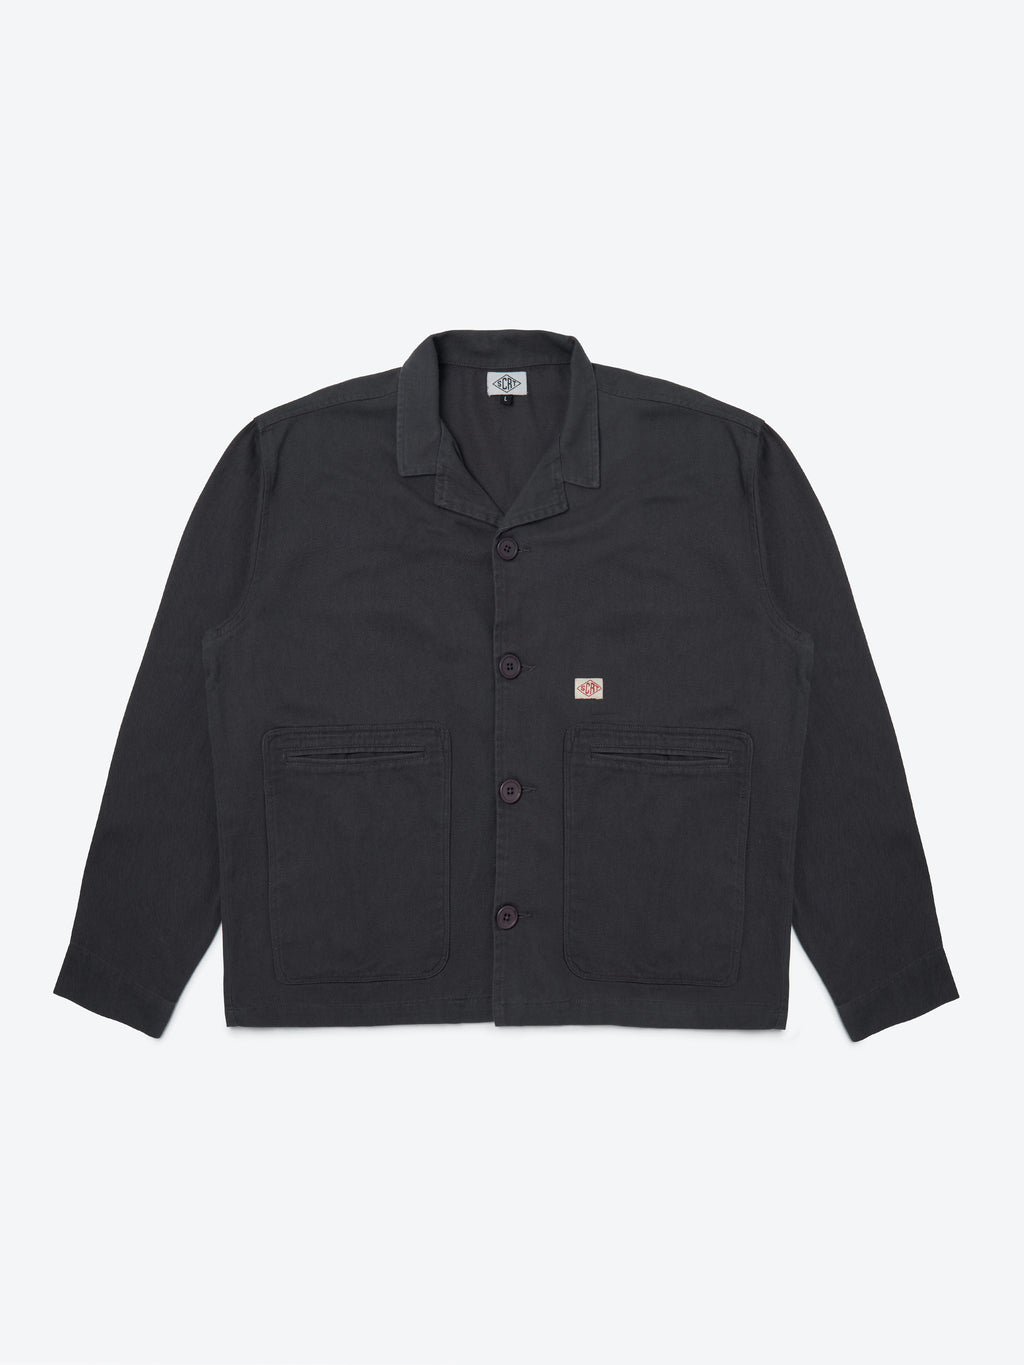 Studio Set Overshirt - Nine Iron